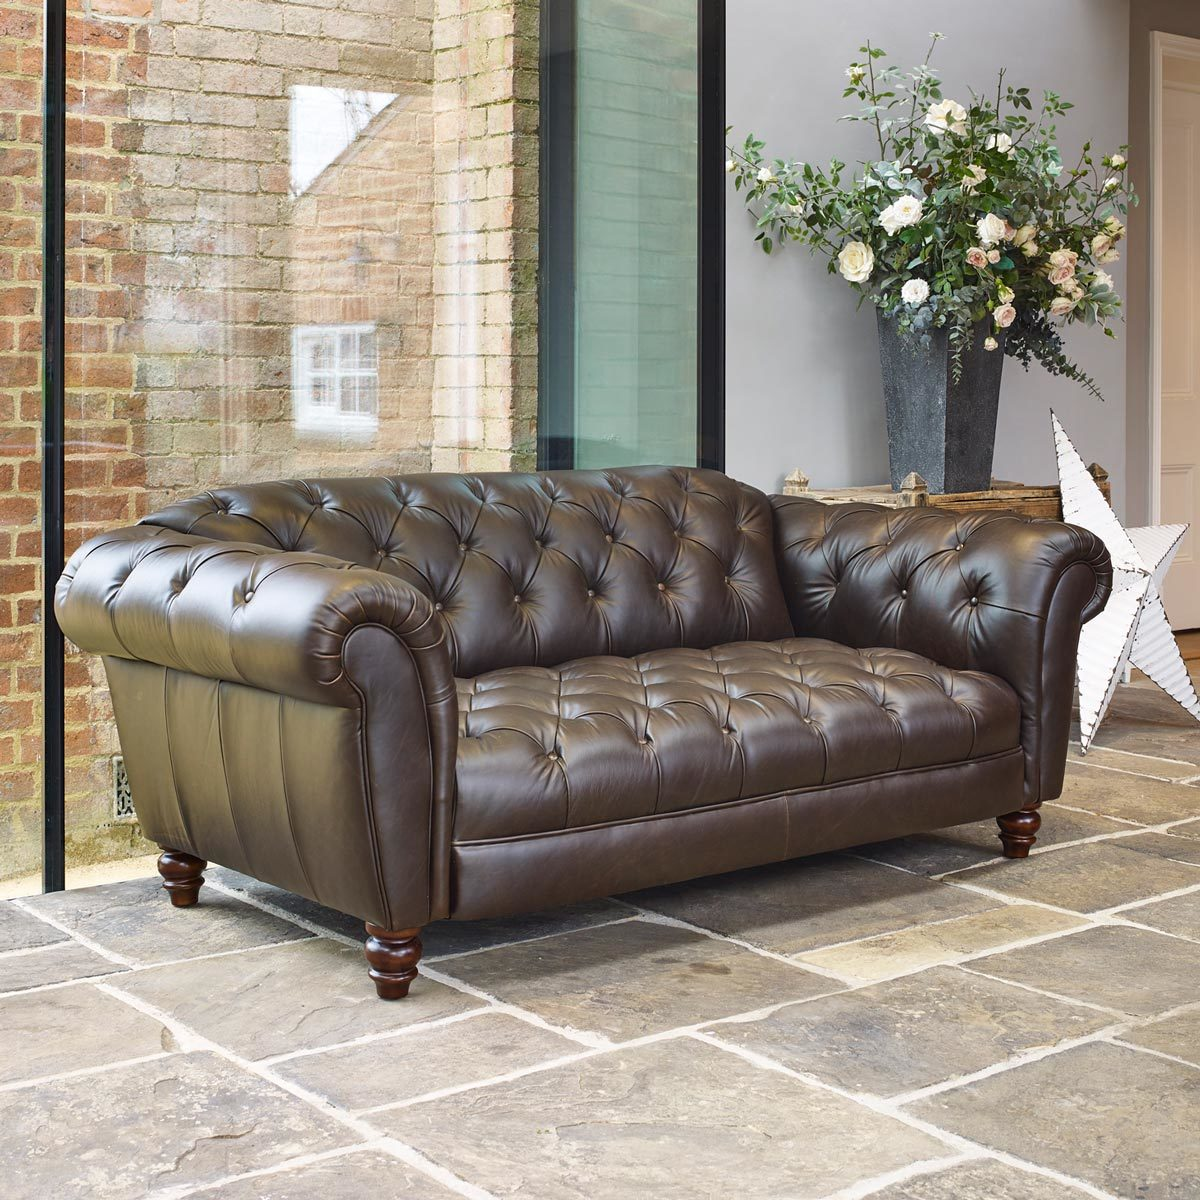 Chesterfield Sofa Online Uk Wellington 2 Seater Semi Aniline Leather Chesterfield Sofa Chocolate Costco Uk